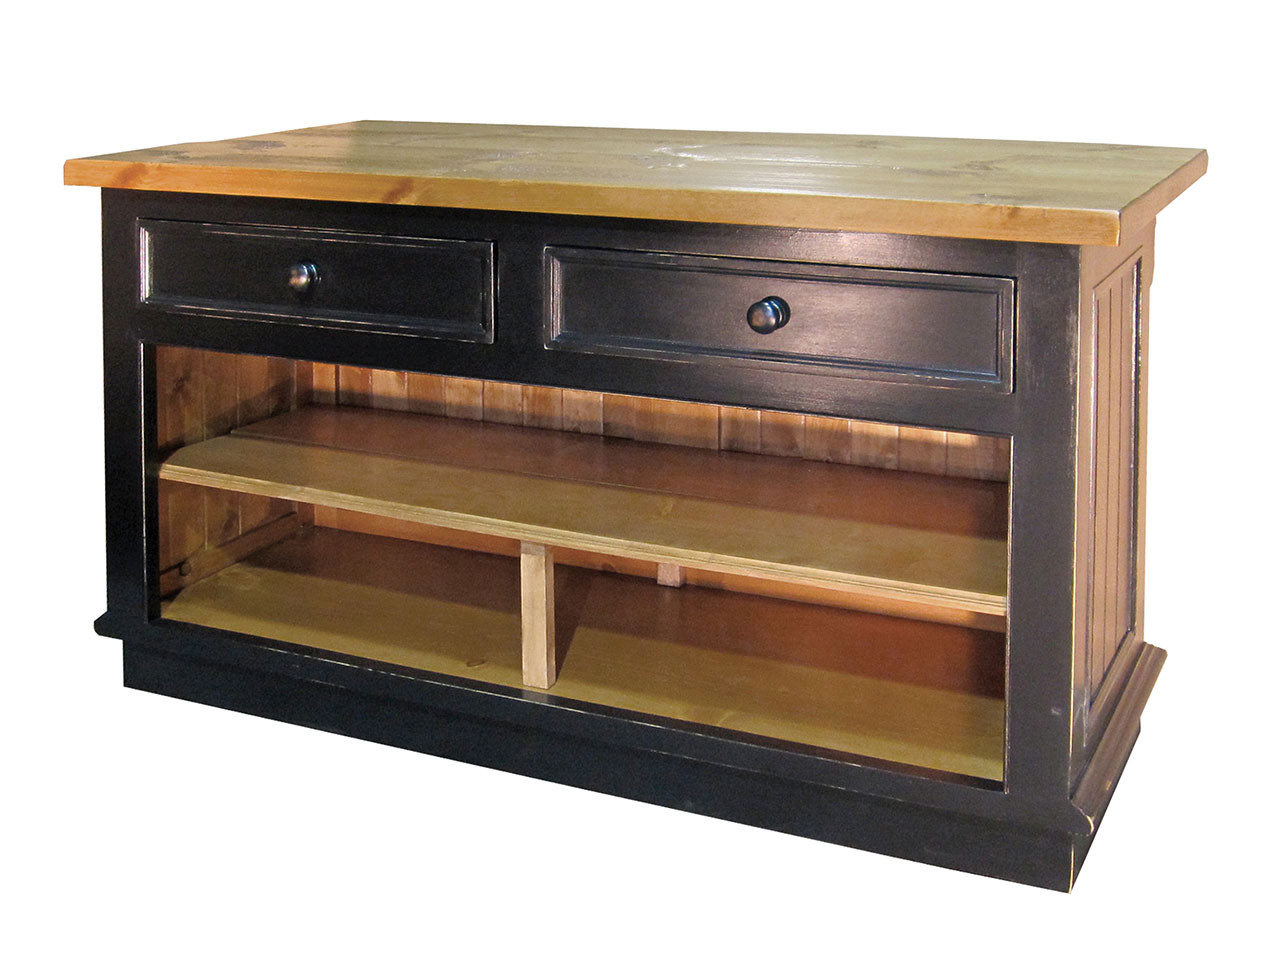 Claremont Kitchen Island - 2 Drawers - Country Willow